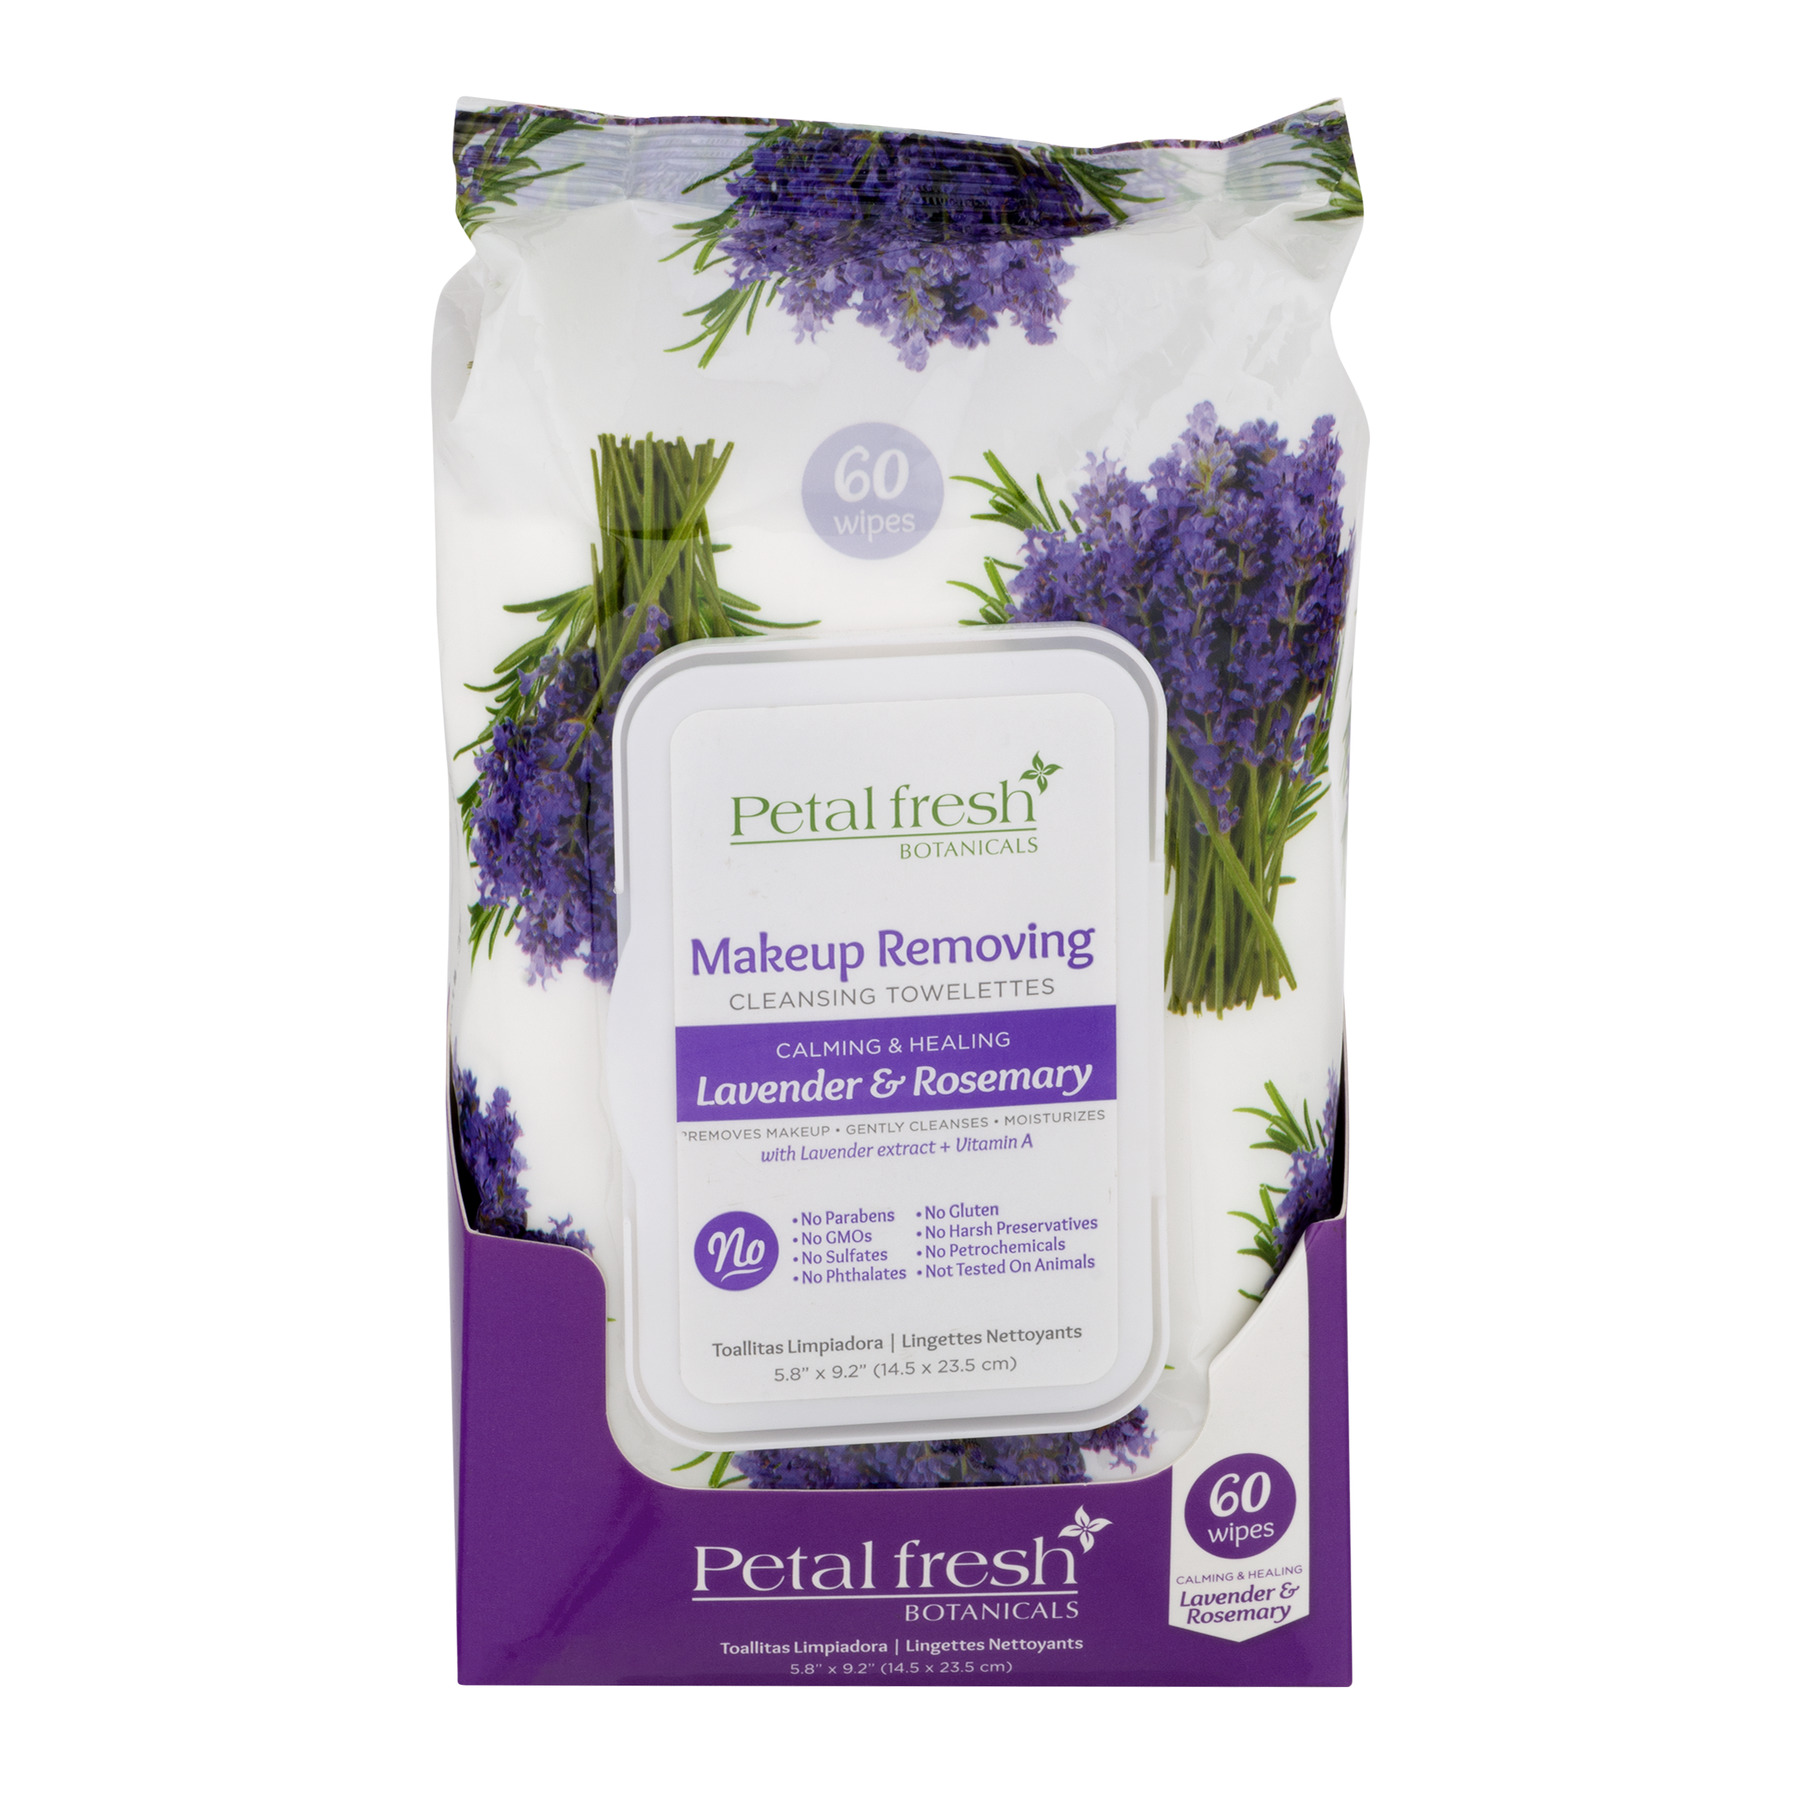 Petal Fresh Makeup Removing Cleansing Towelettes Lavender & Rosemary, 60.0 CT